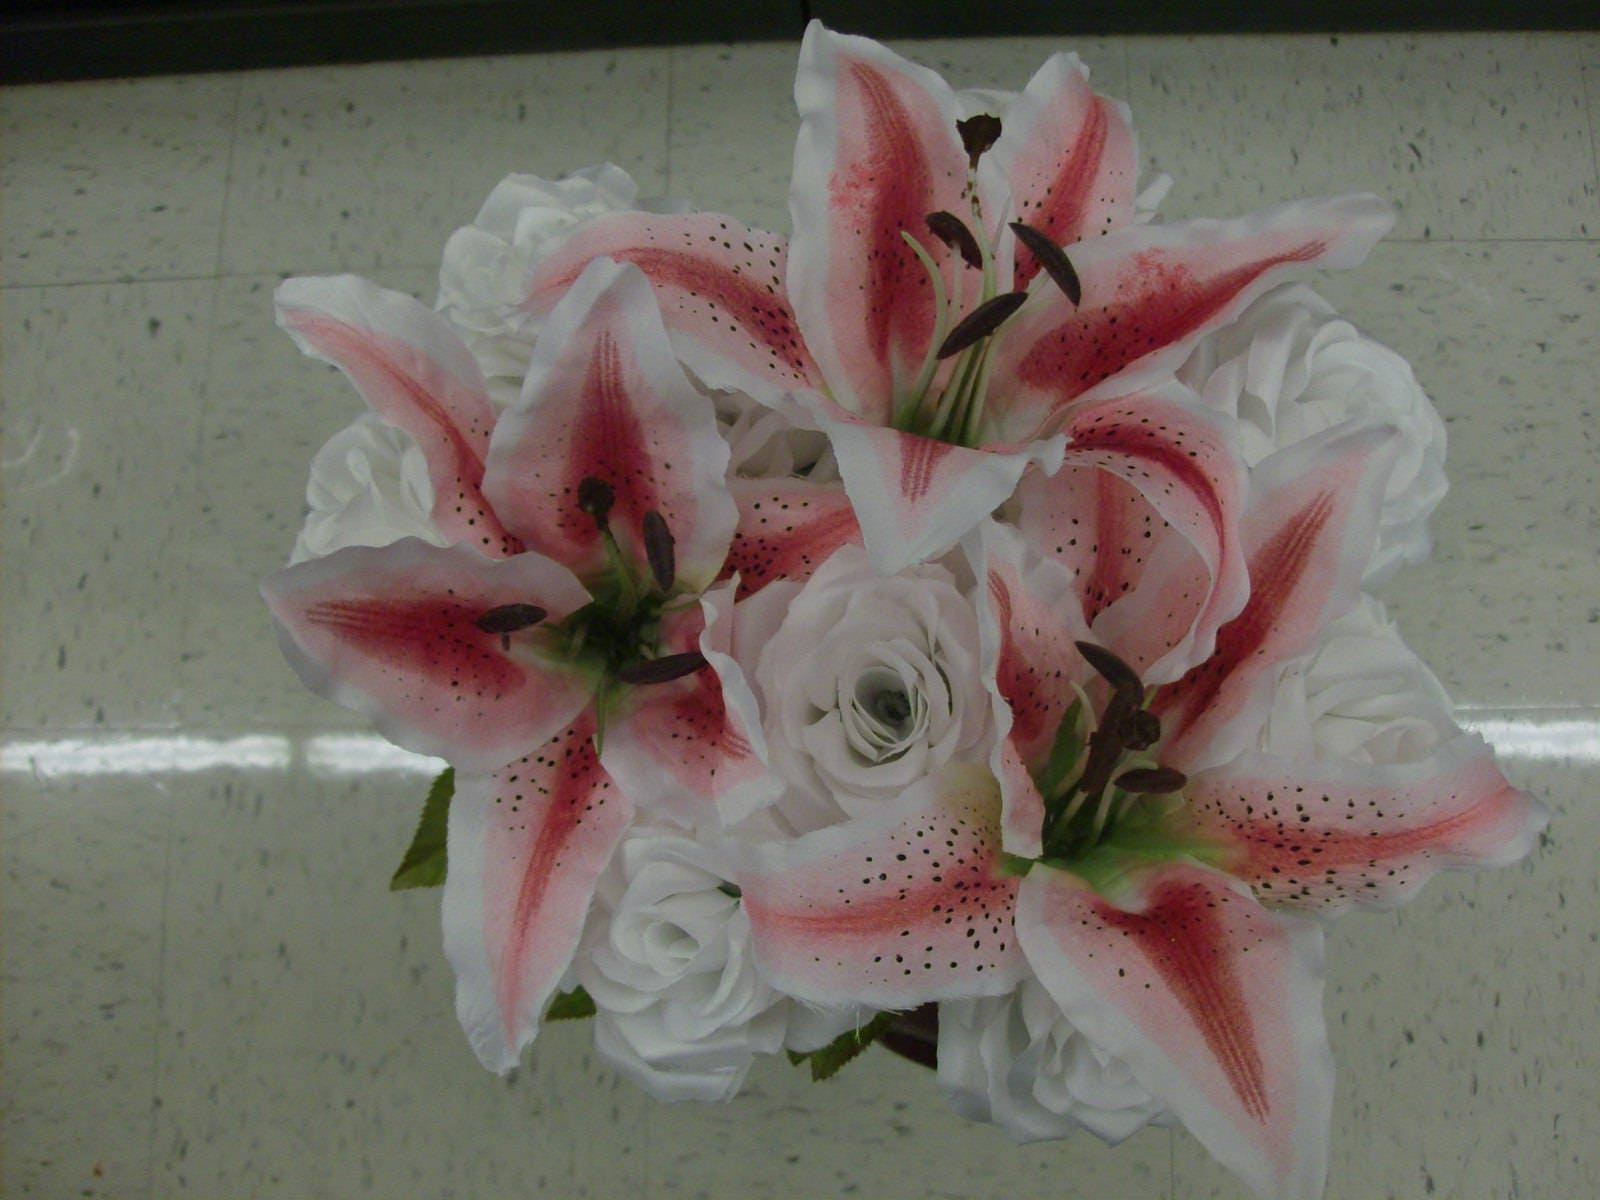 Hot pink stargazer lily white rose bridal bouquet premium quality hot pink stargazer lily white rose bridal bouquet premium quality designer flowers beach bride destination wedding free groom boutonniere mightylinksfo